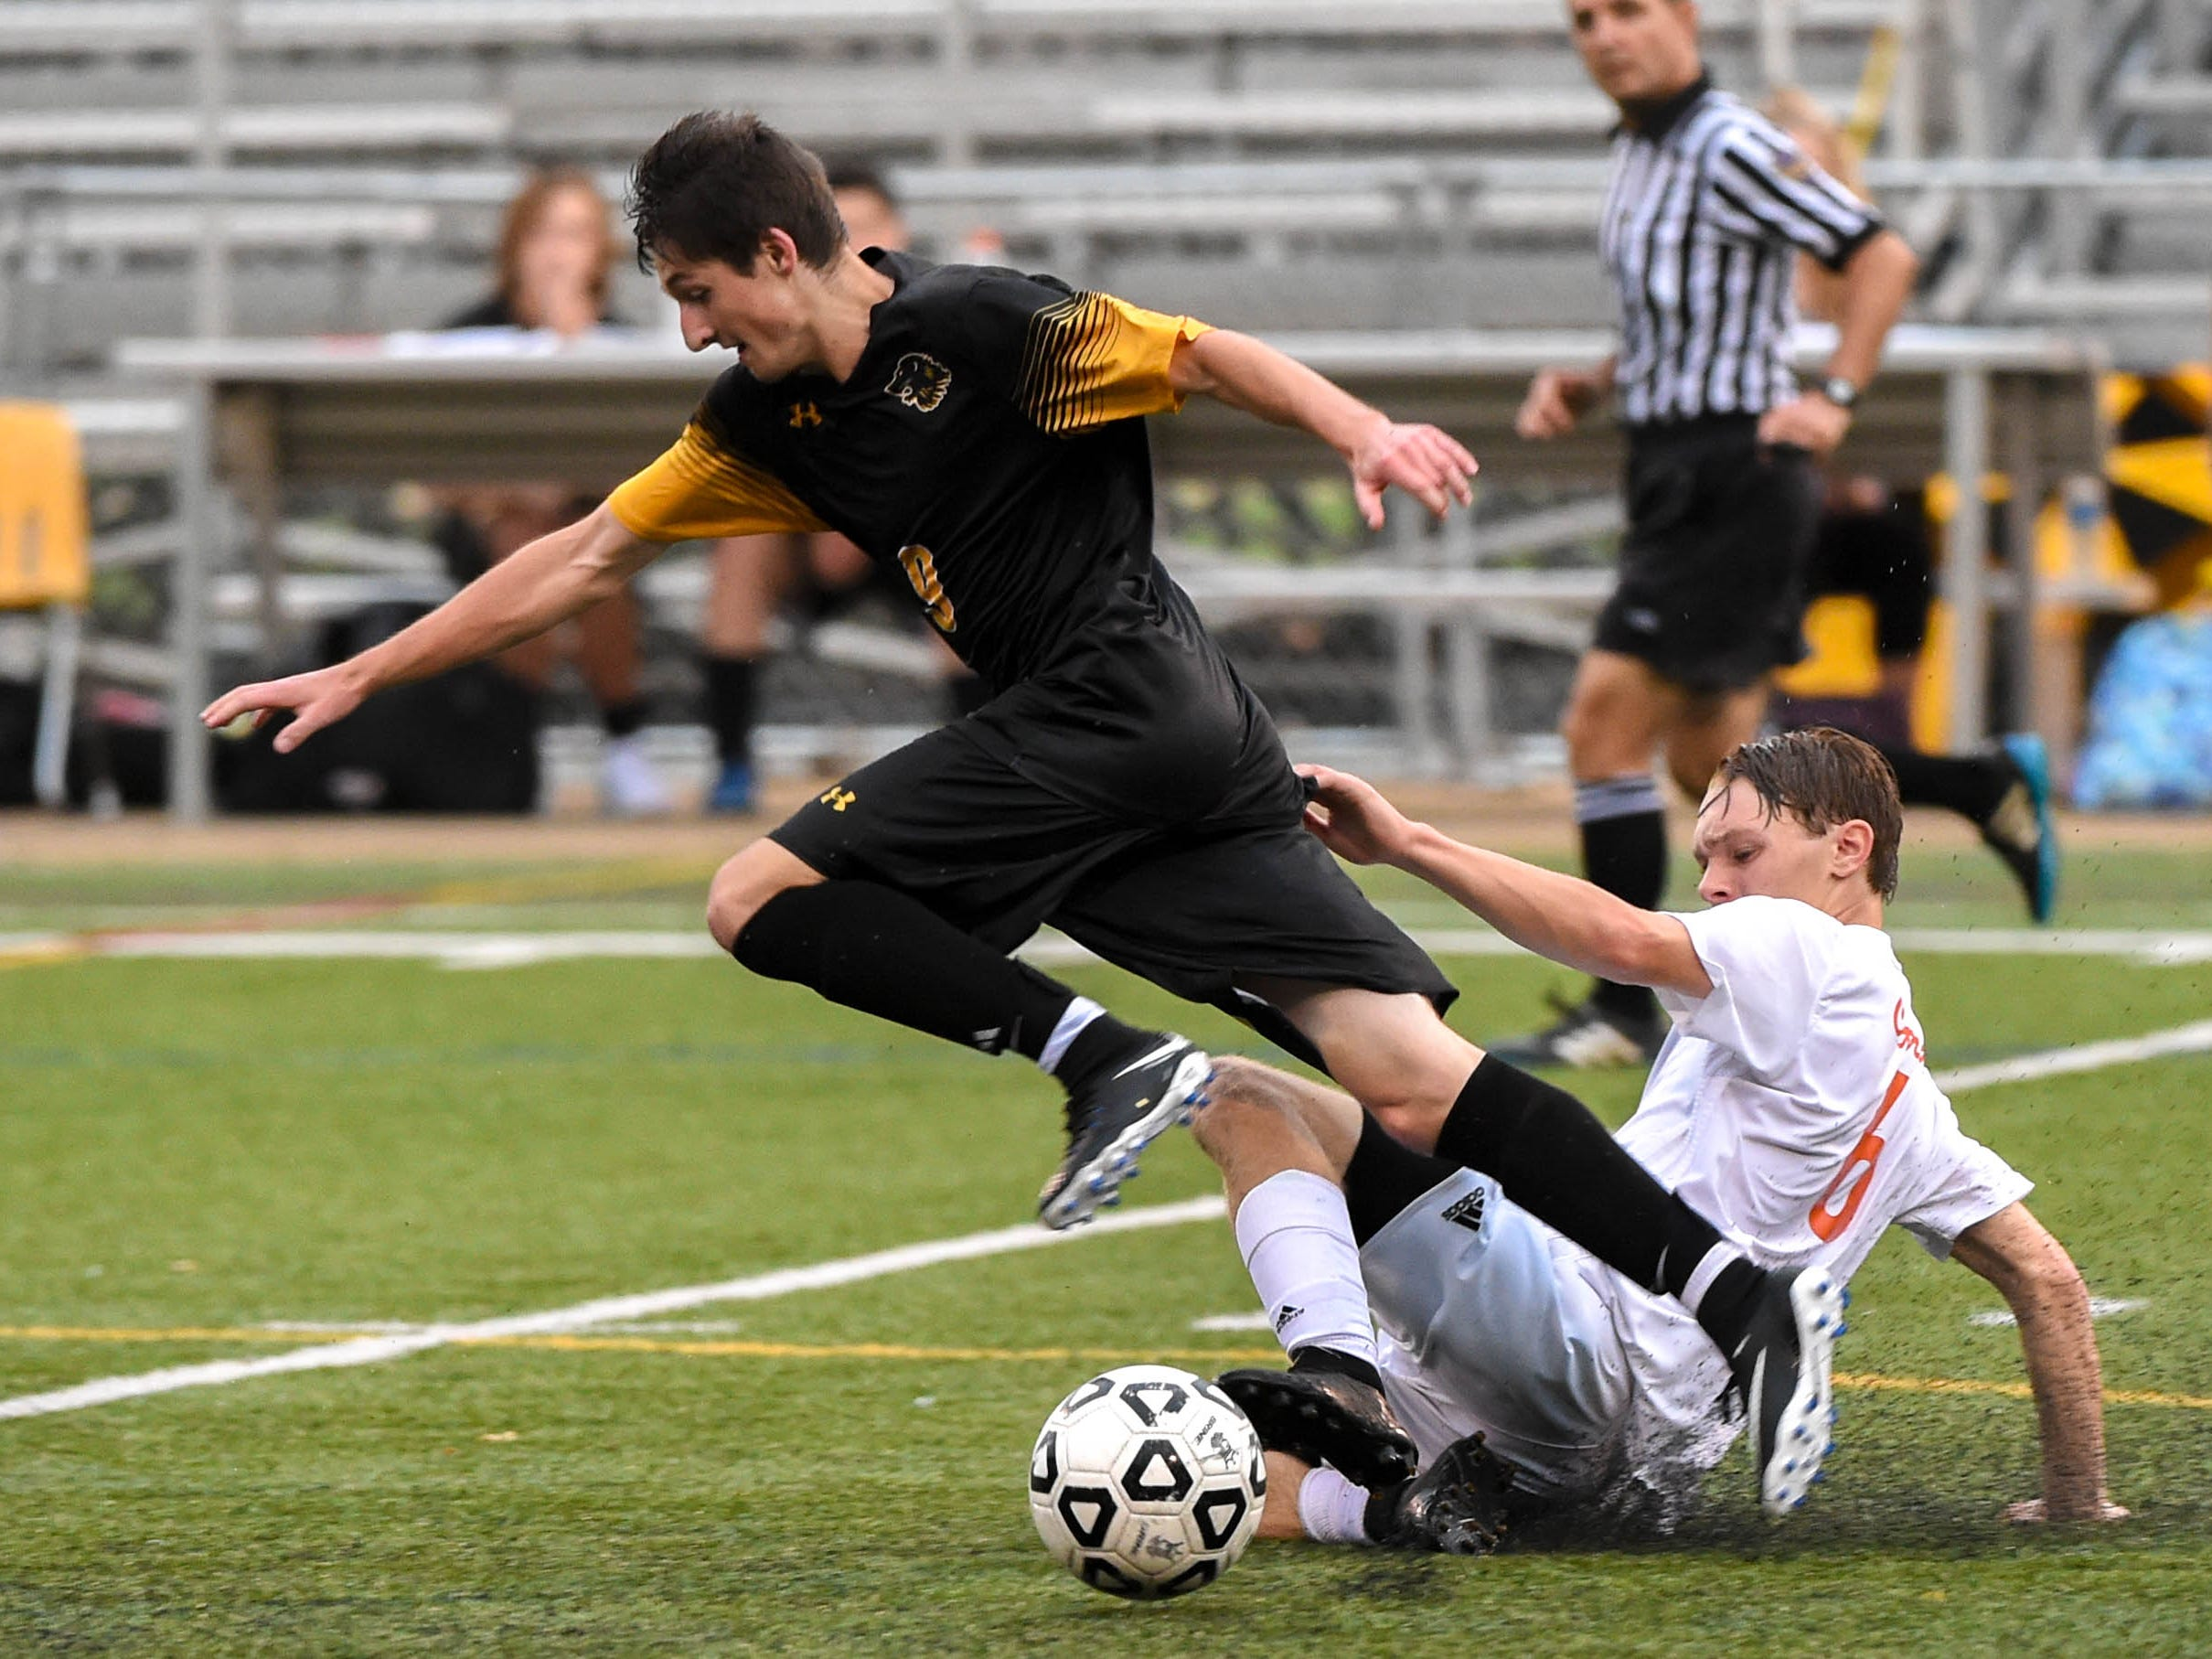 Red Lion is building soccer success with a foundation of trust and discipline